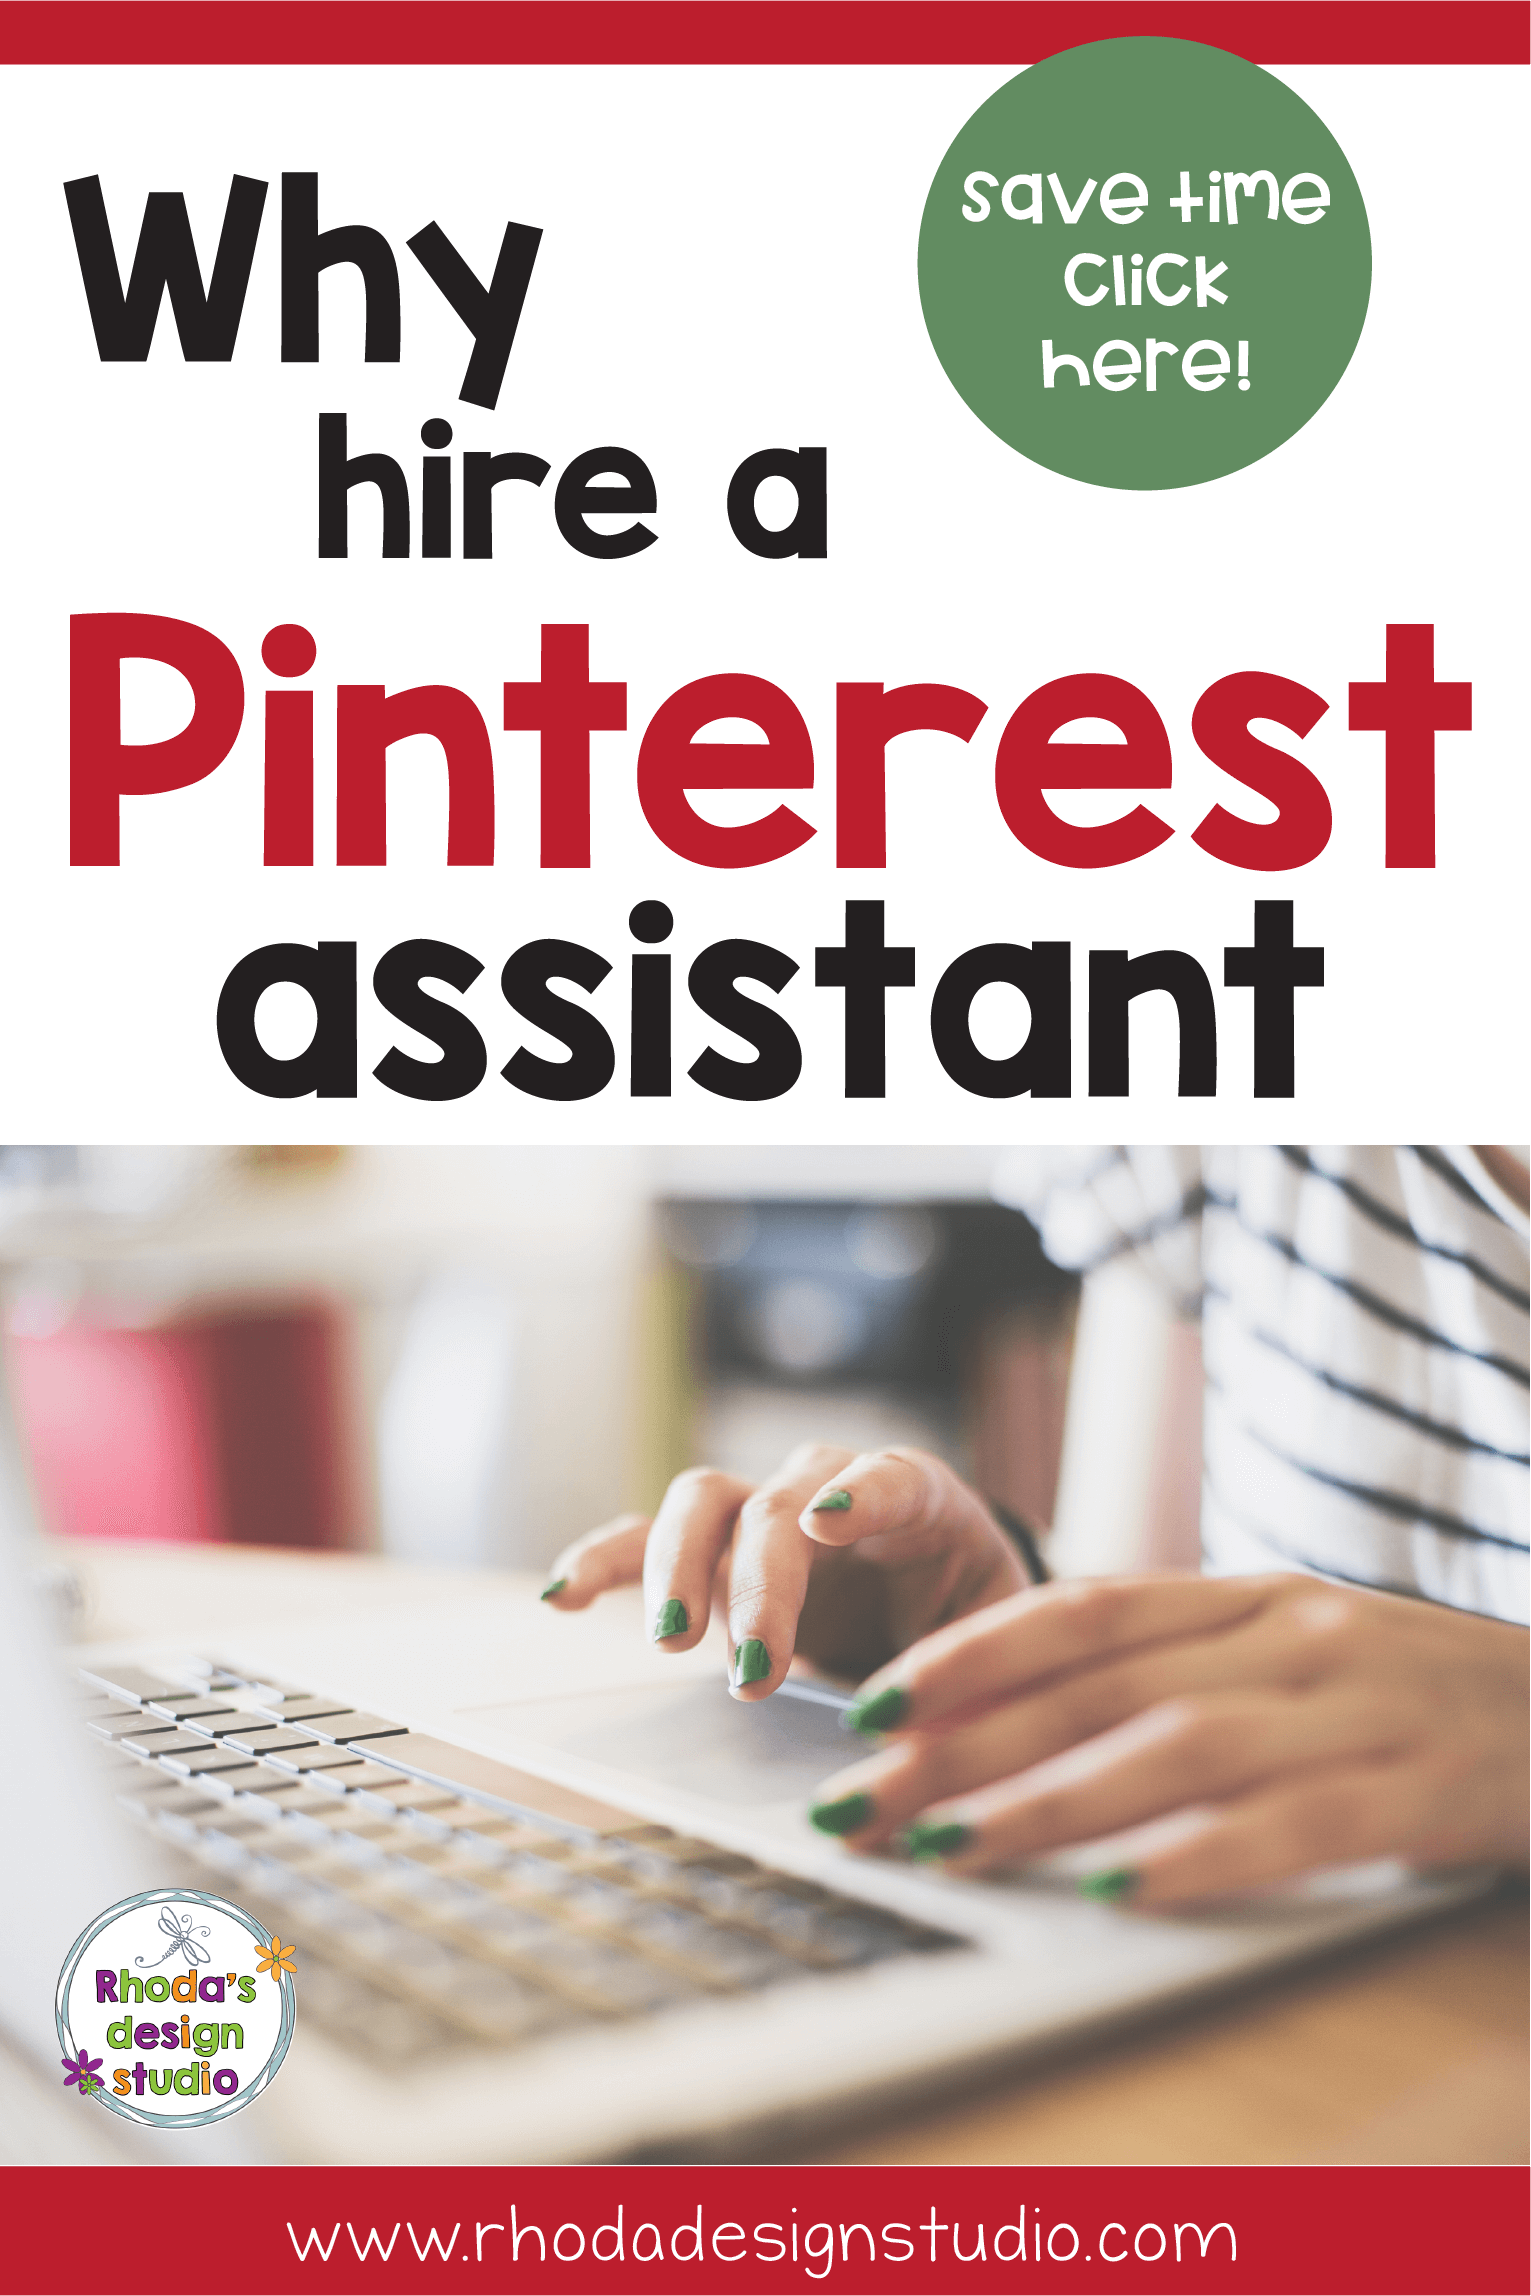 Pinterest Marketing is a great way to boost your sites traffic. Hiring a Pinterest Virtual Assistant who can implement strategies that increase your business by setting up scheduling on Tailwind or BoardBooster and helping you customize pins will save you time and help you make money.